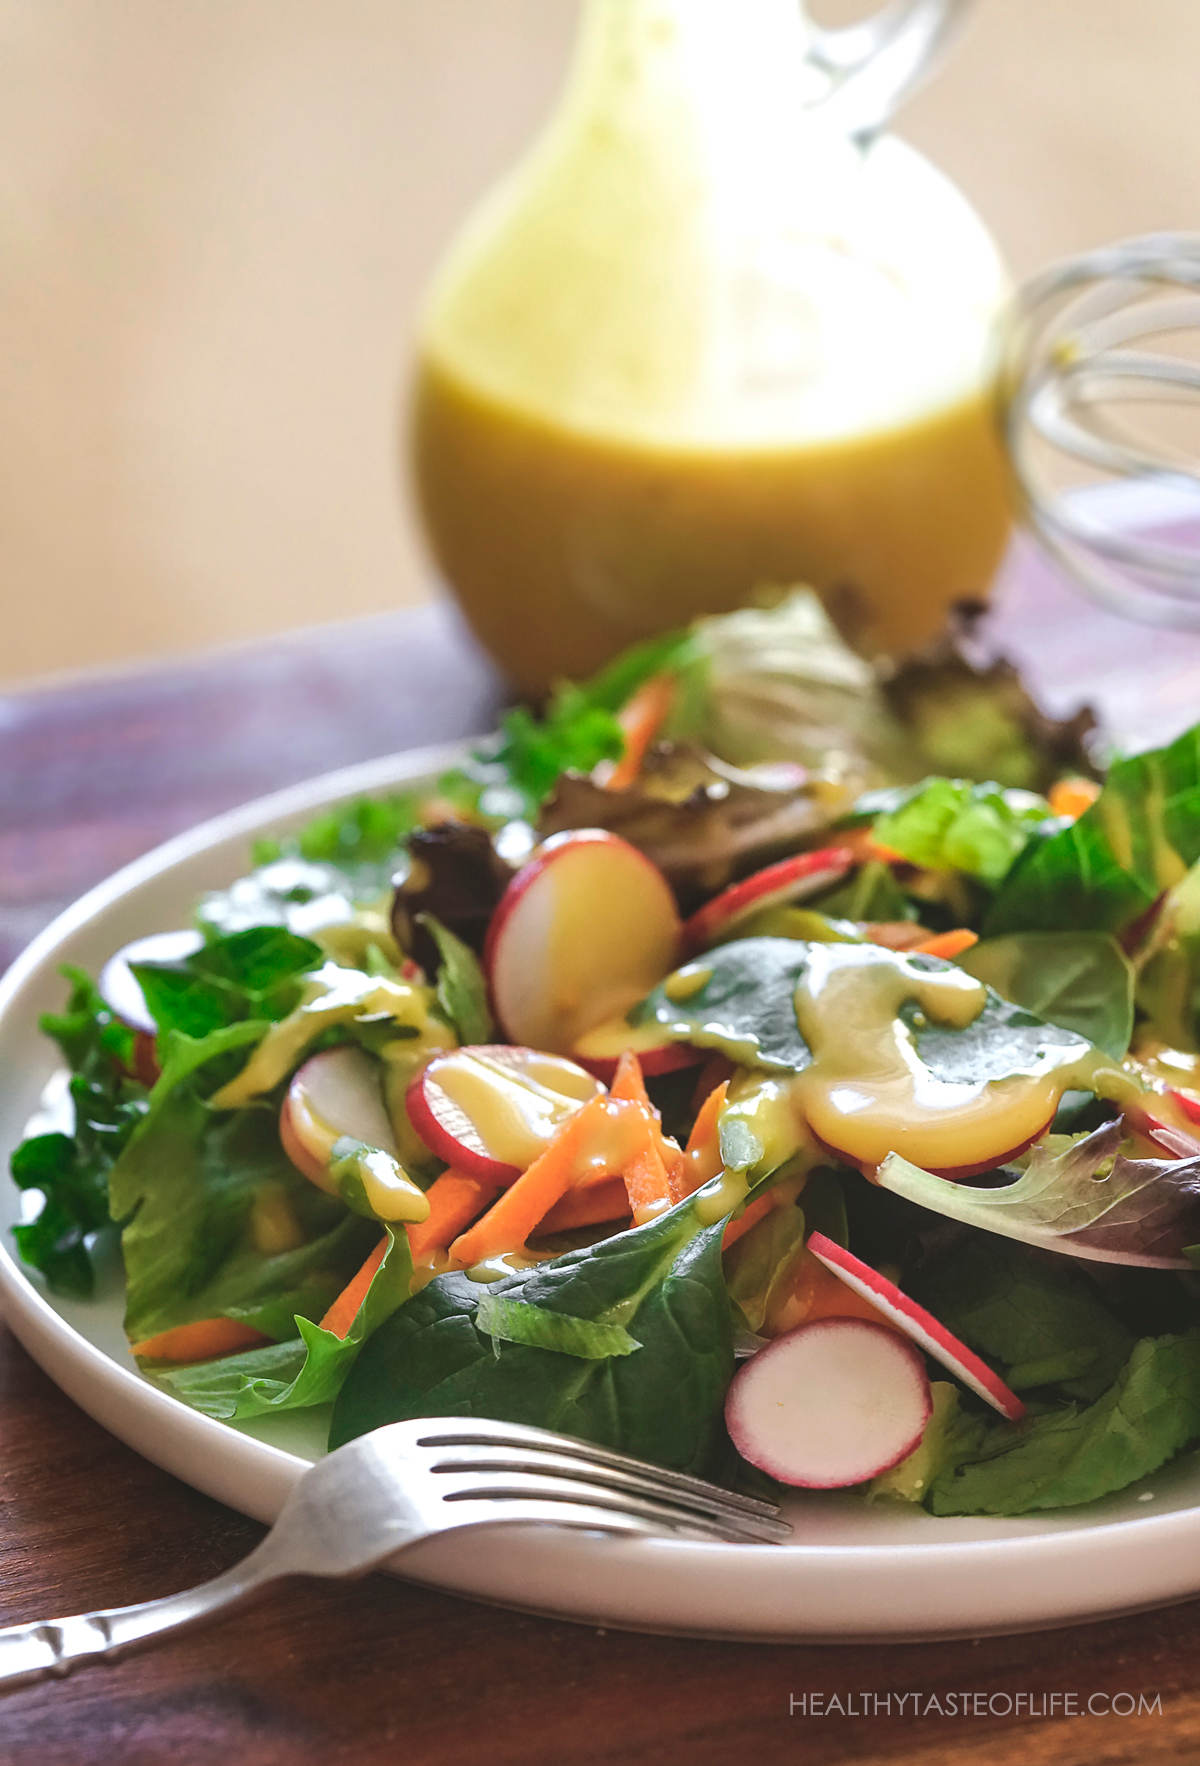 A plate of salad drizzled with vegan honey mustard sauce.